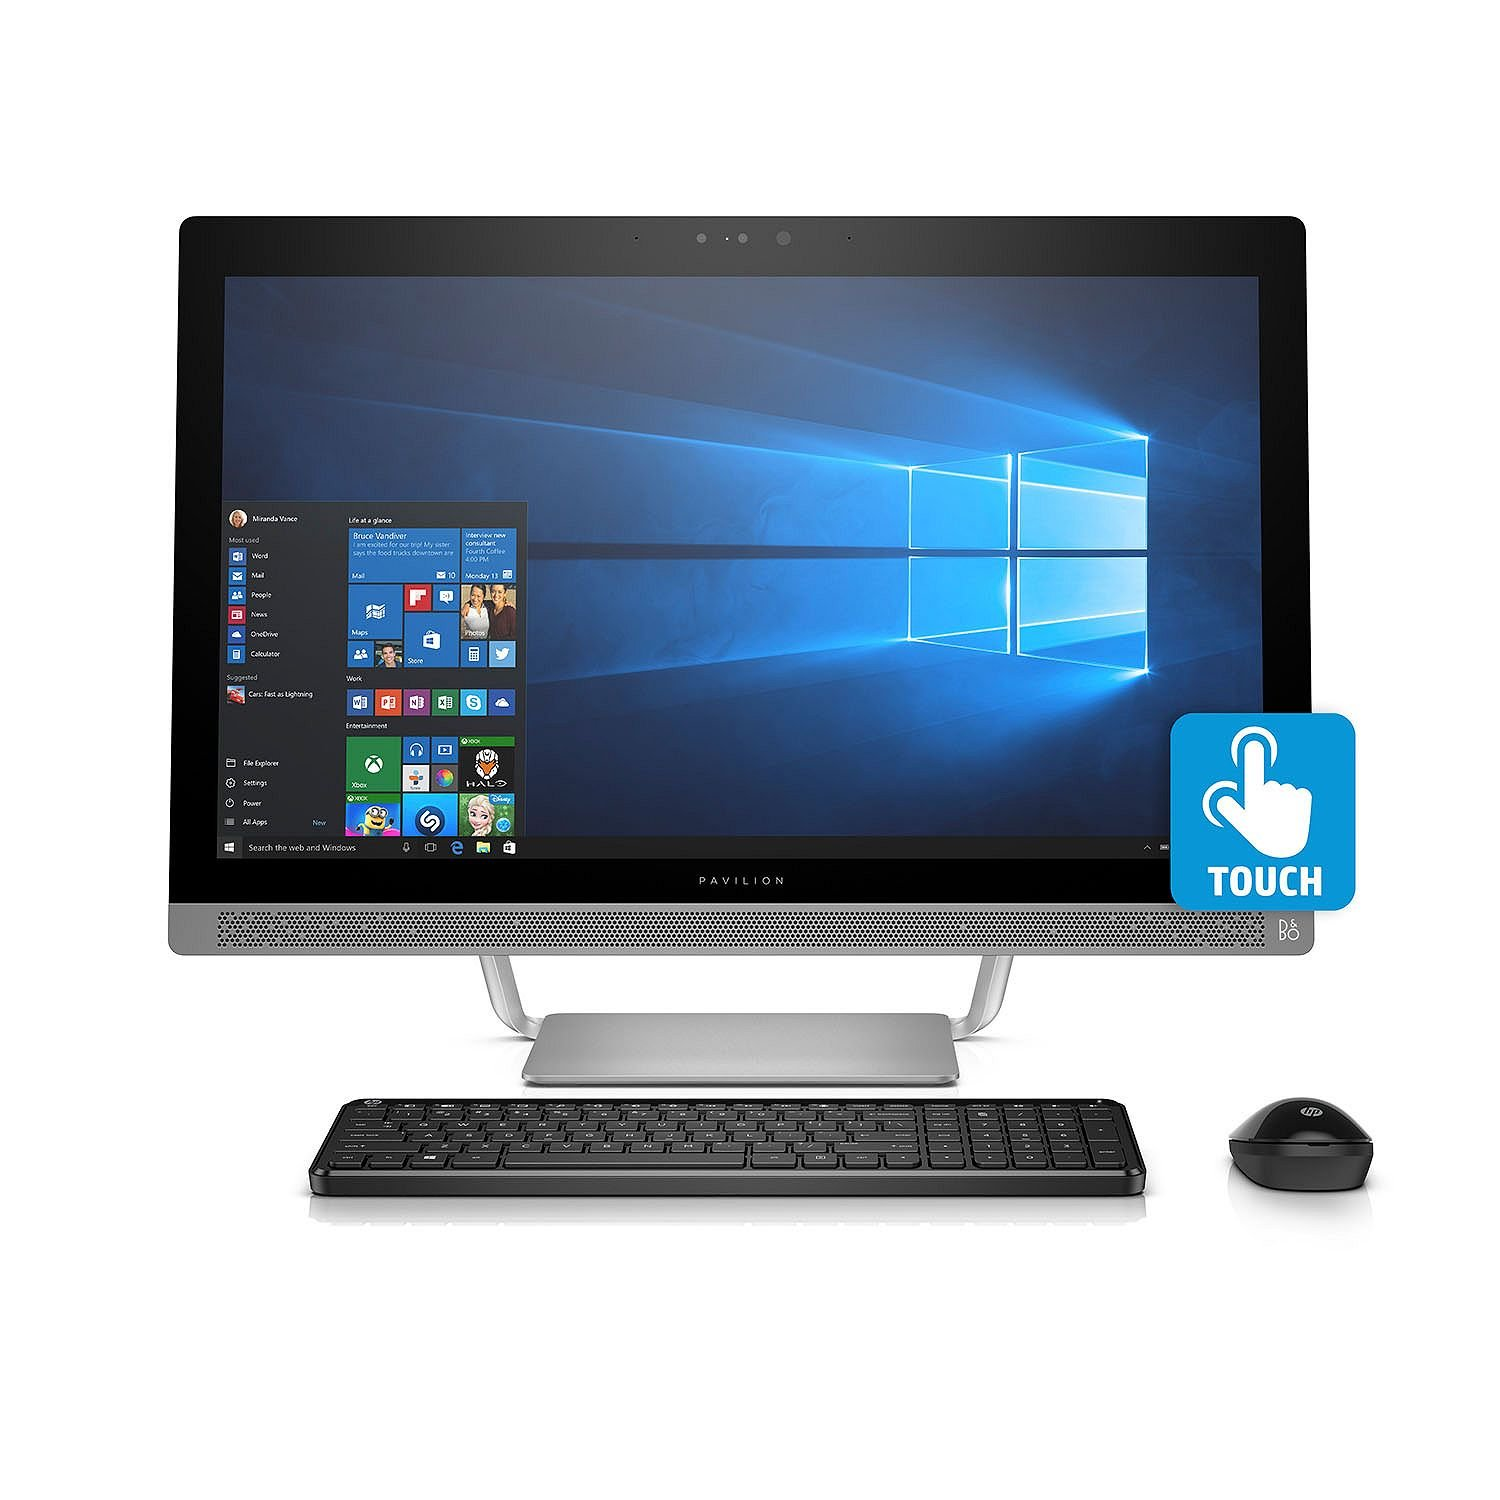 HP Pavilion FHD IPS 24'' Touchscreen All-in-One Desktop, Quad Core Intel i7-7700T 3.8 GHz, 8GB DDR4 RAM, 1TB 7200RPM HDD, Dedicated Graphics 2GB GDDR5, DVD, BT, B&O PLAY, 802.11AC, Wireless Combo-Win10 by HP